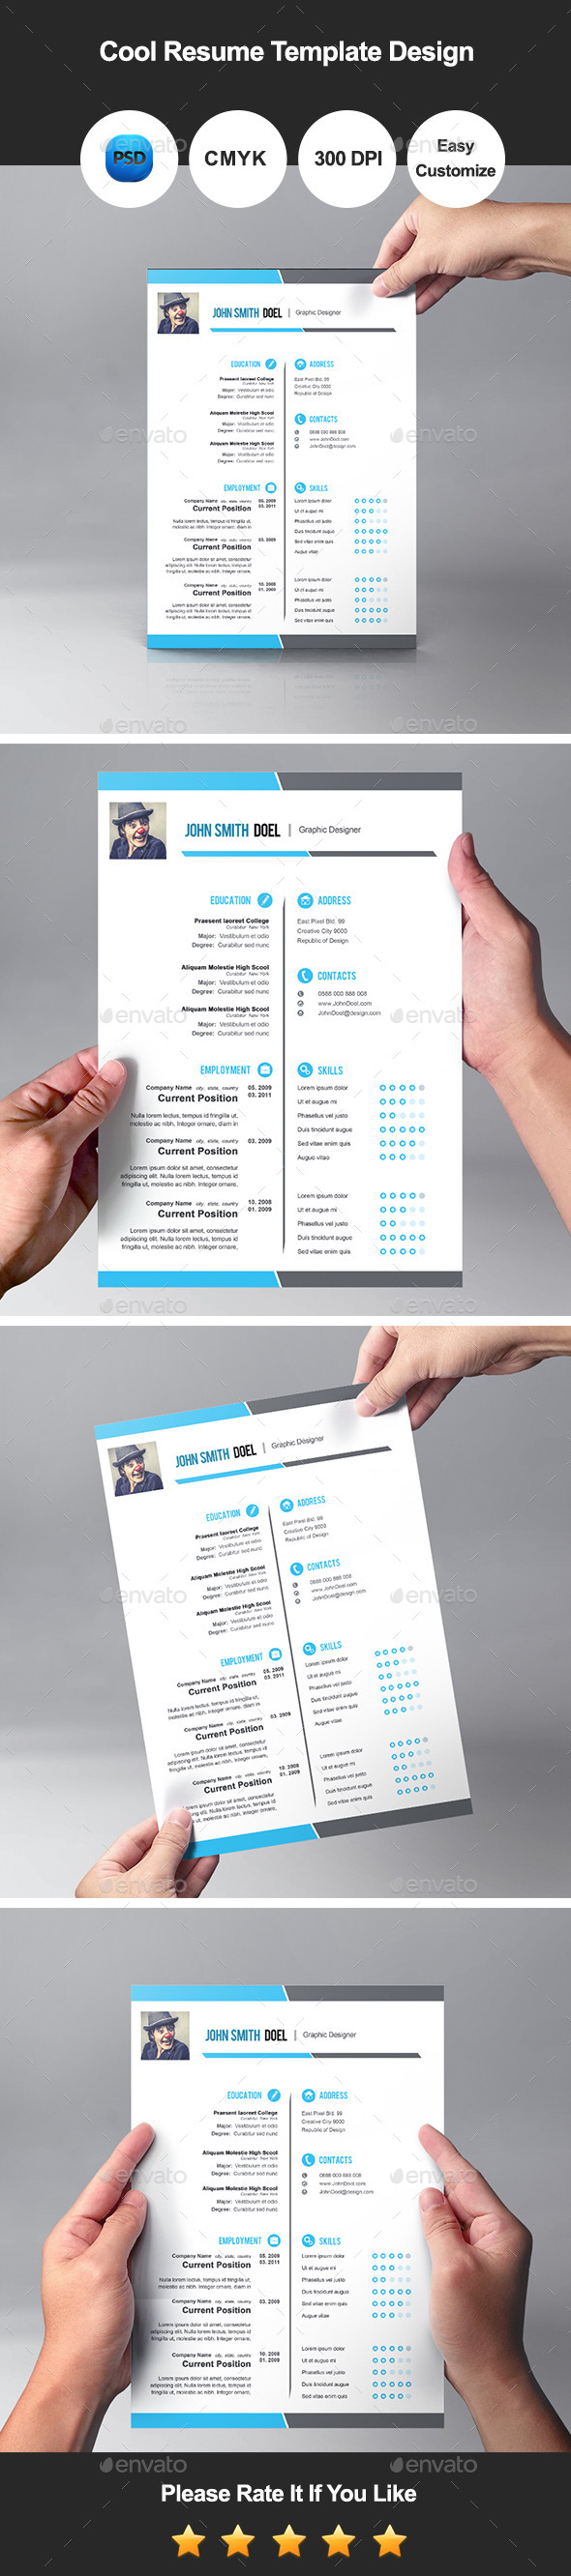 Premium Cool Resume Template Design - Resumes Stationery